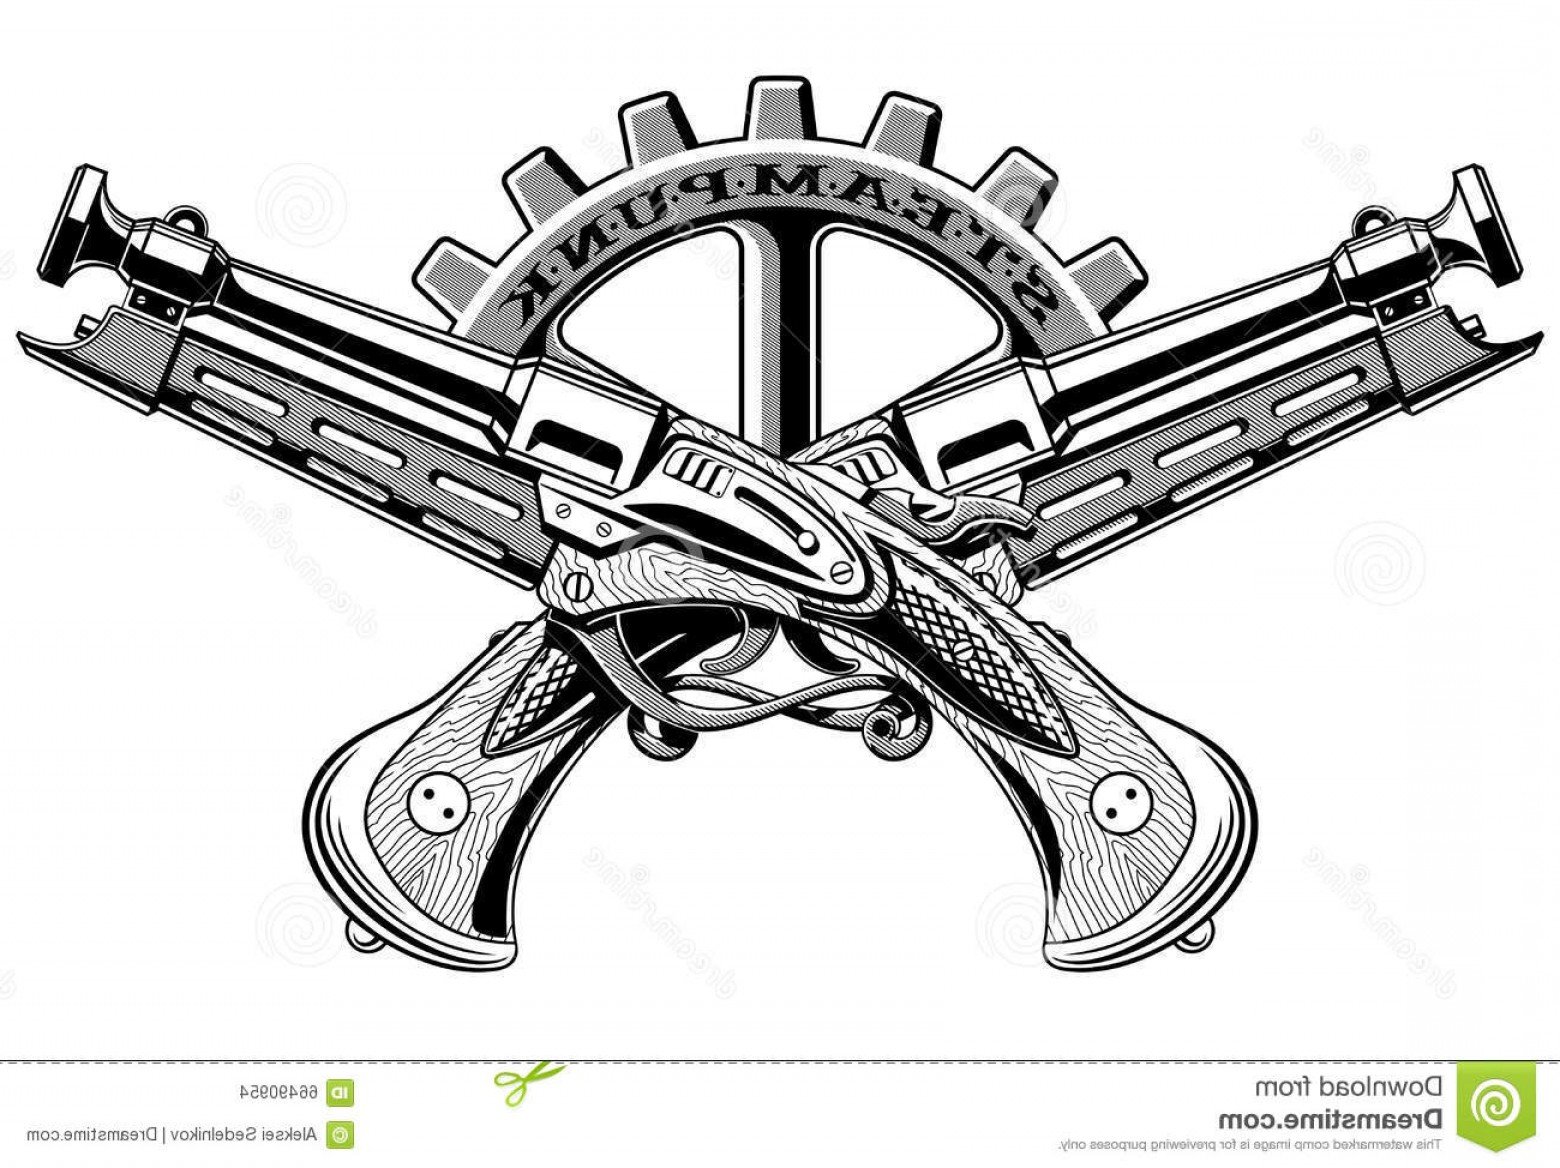 Vintage Crossed Pistols Vector: Stock Illustration Vintage Steampunk Guns Vector Illustration Old Crossed Pistols Image